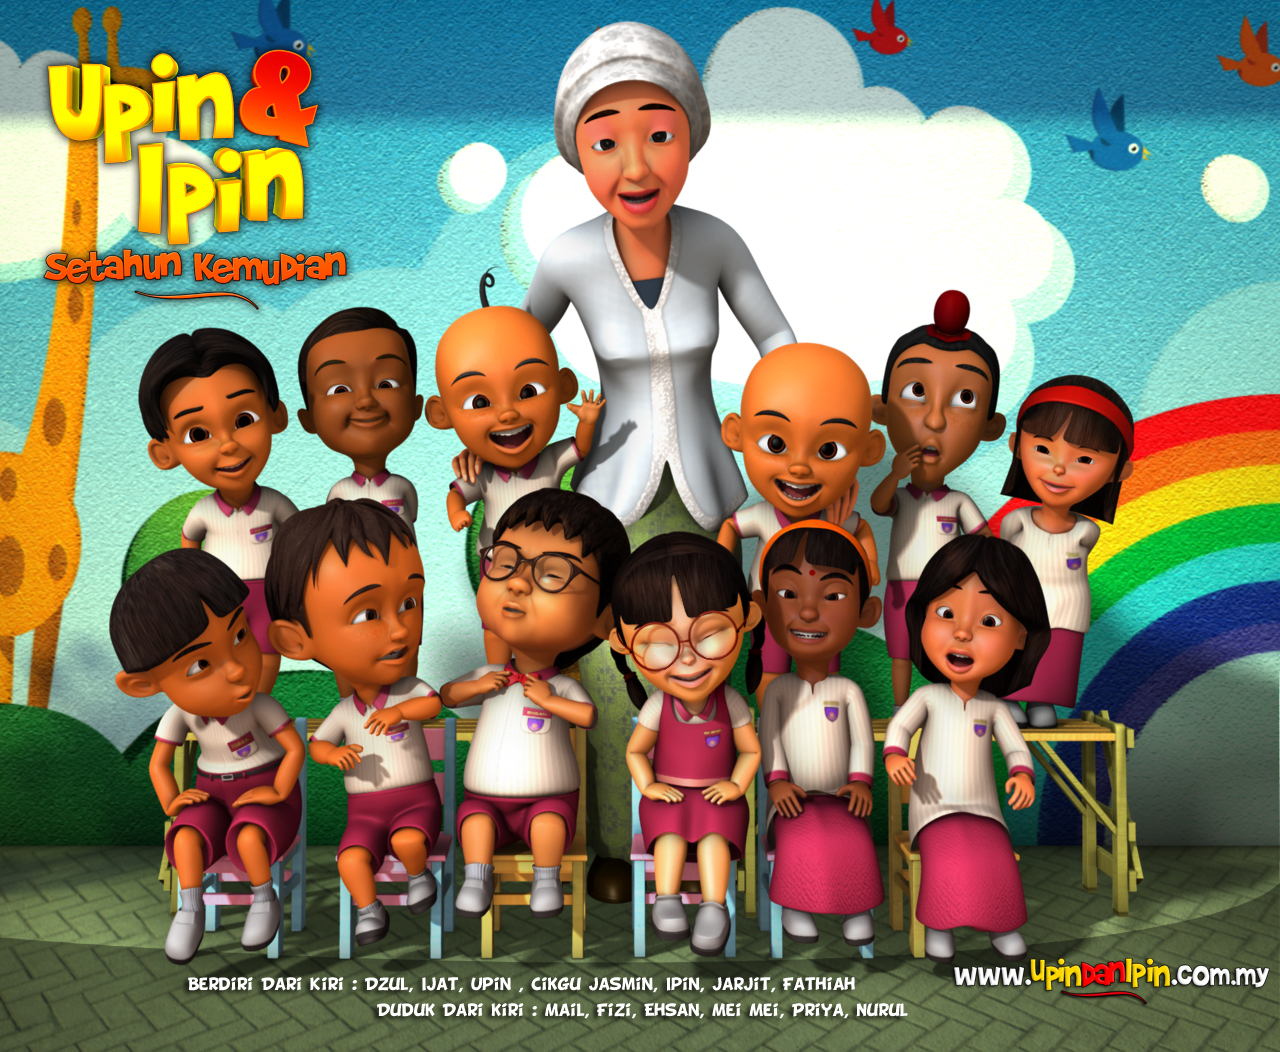 UPIN, IPIN DAN KAWAN-KAWAN (TV Serial Series)